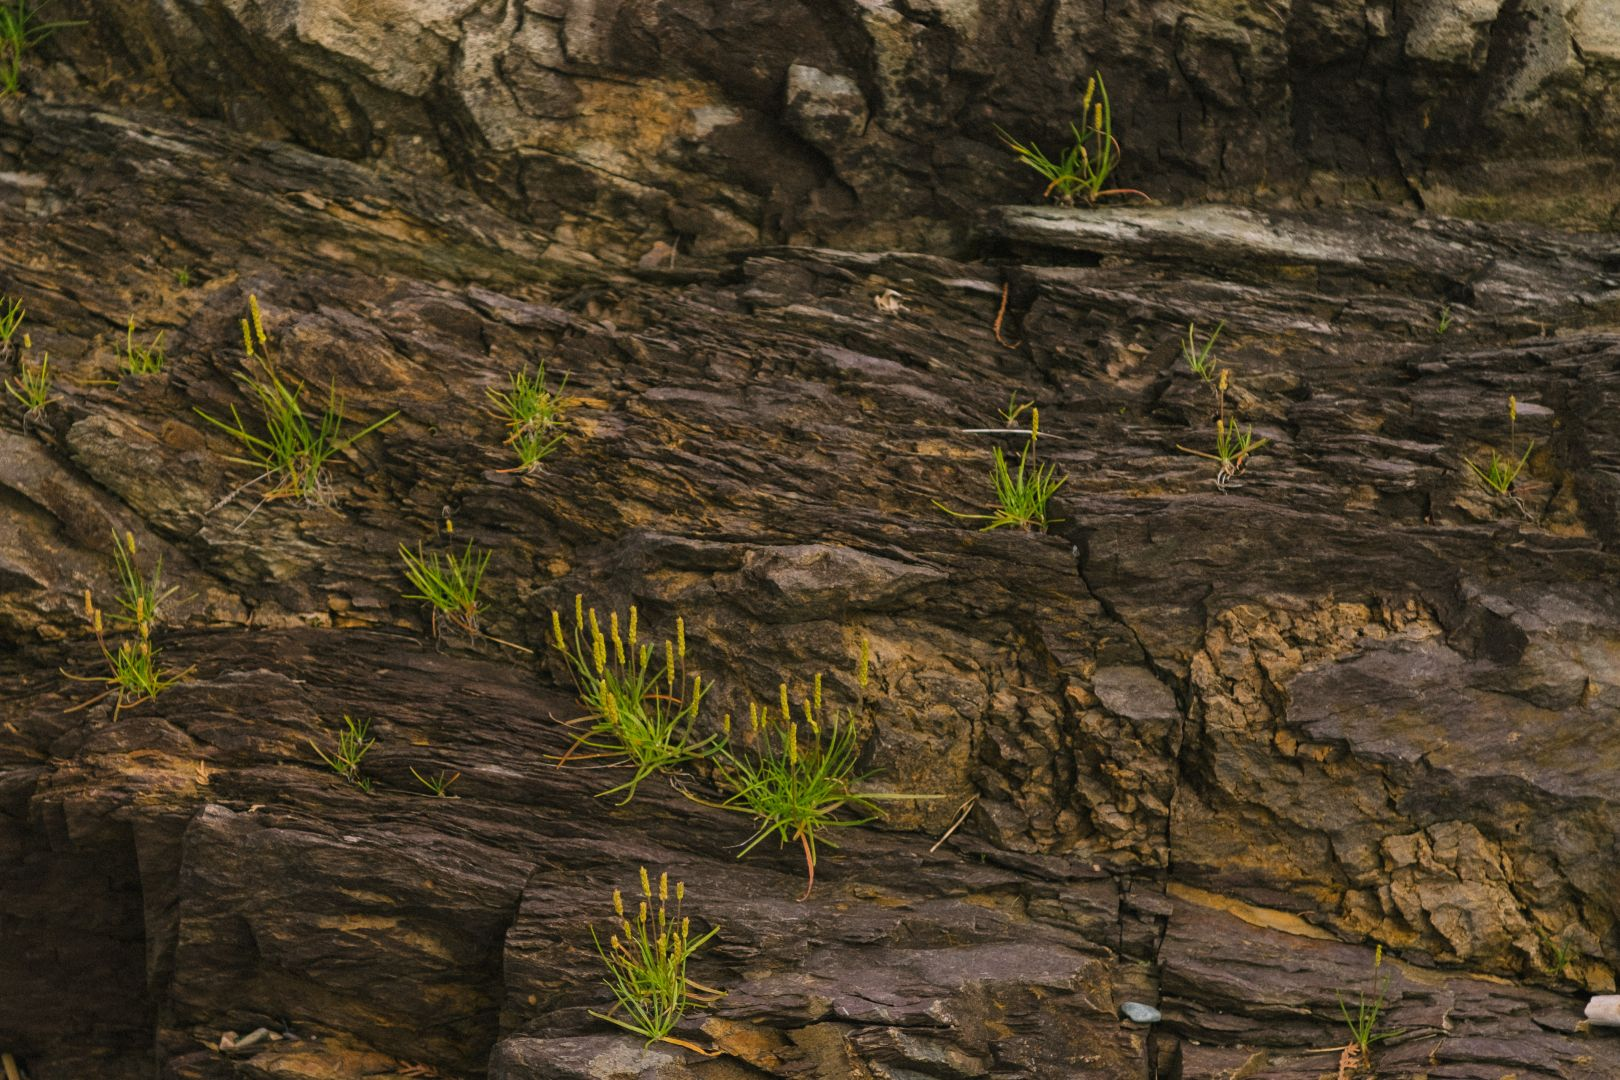 A photo depicting Rock Face with Green Plants